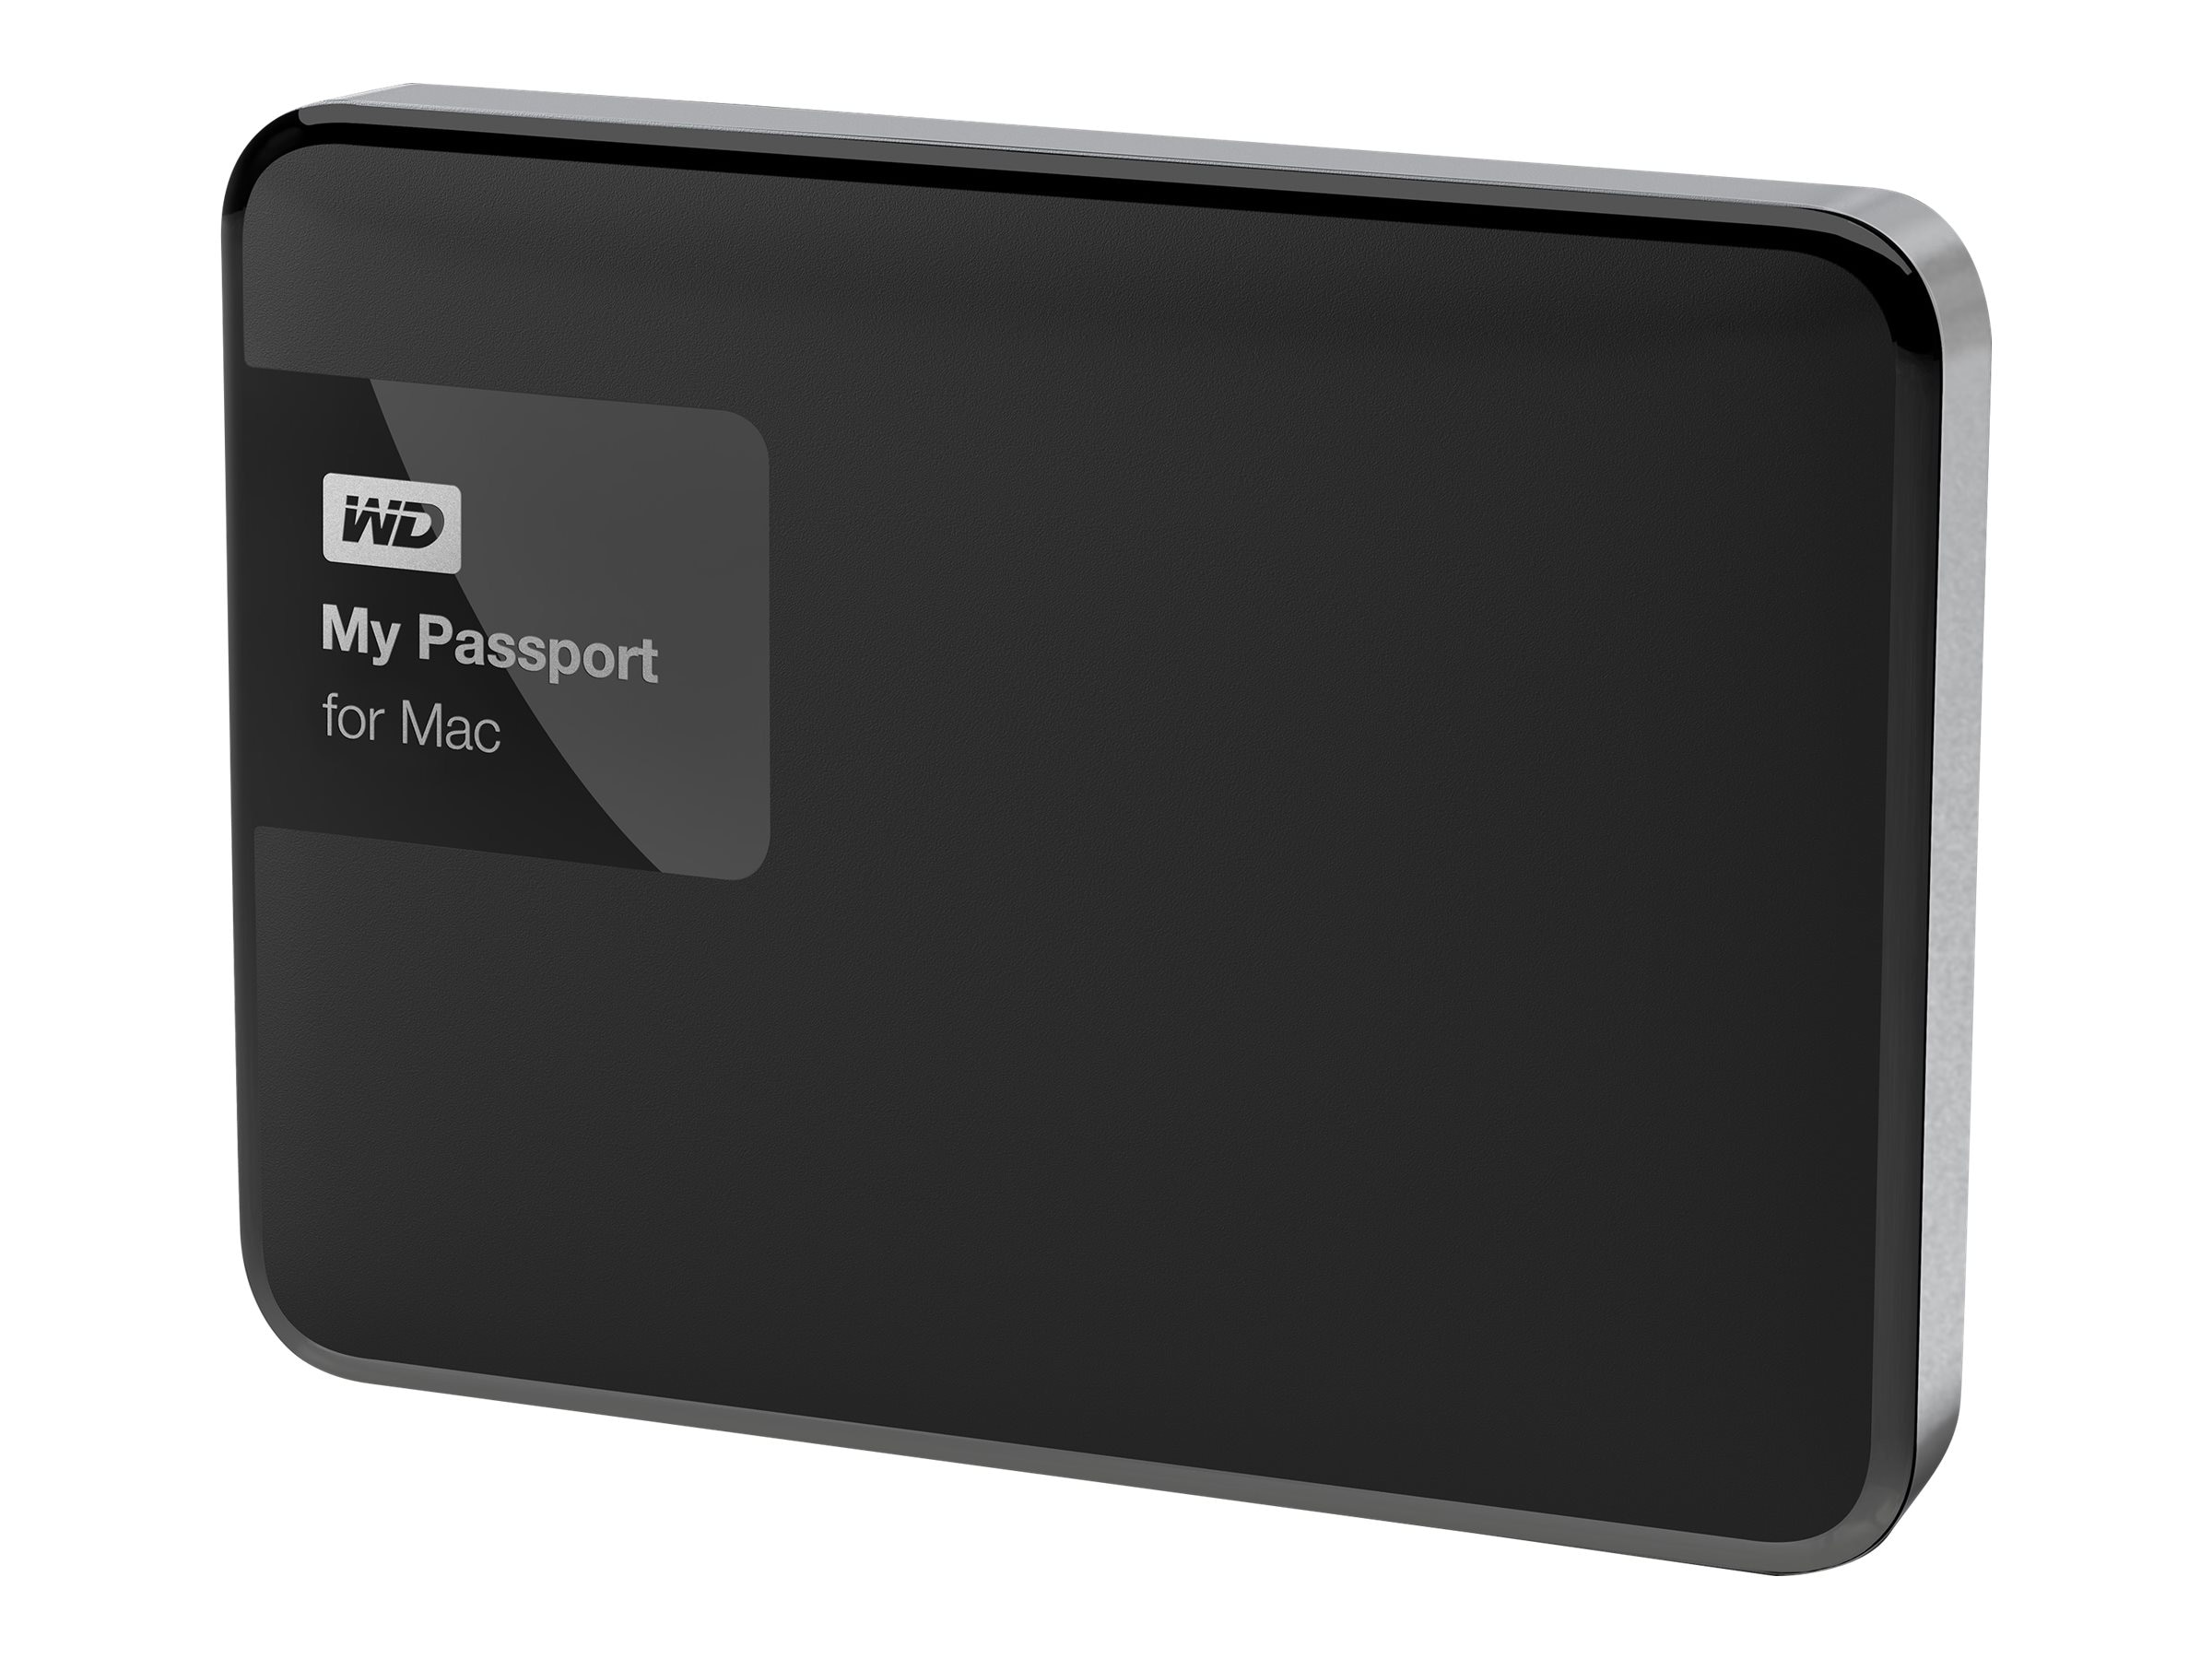 WD 3TB My Passport for Mac USB 3.0 Portable Hard Drive, WDBCGL0030BSL-NESN